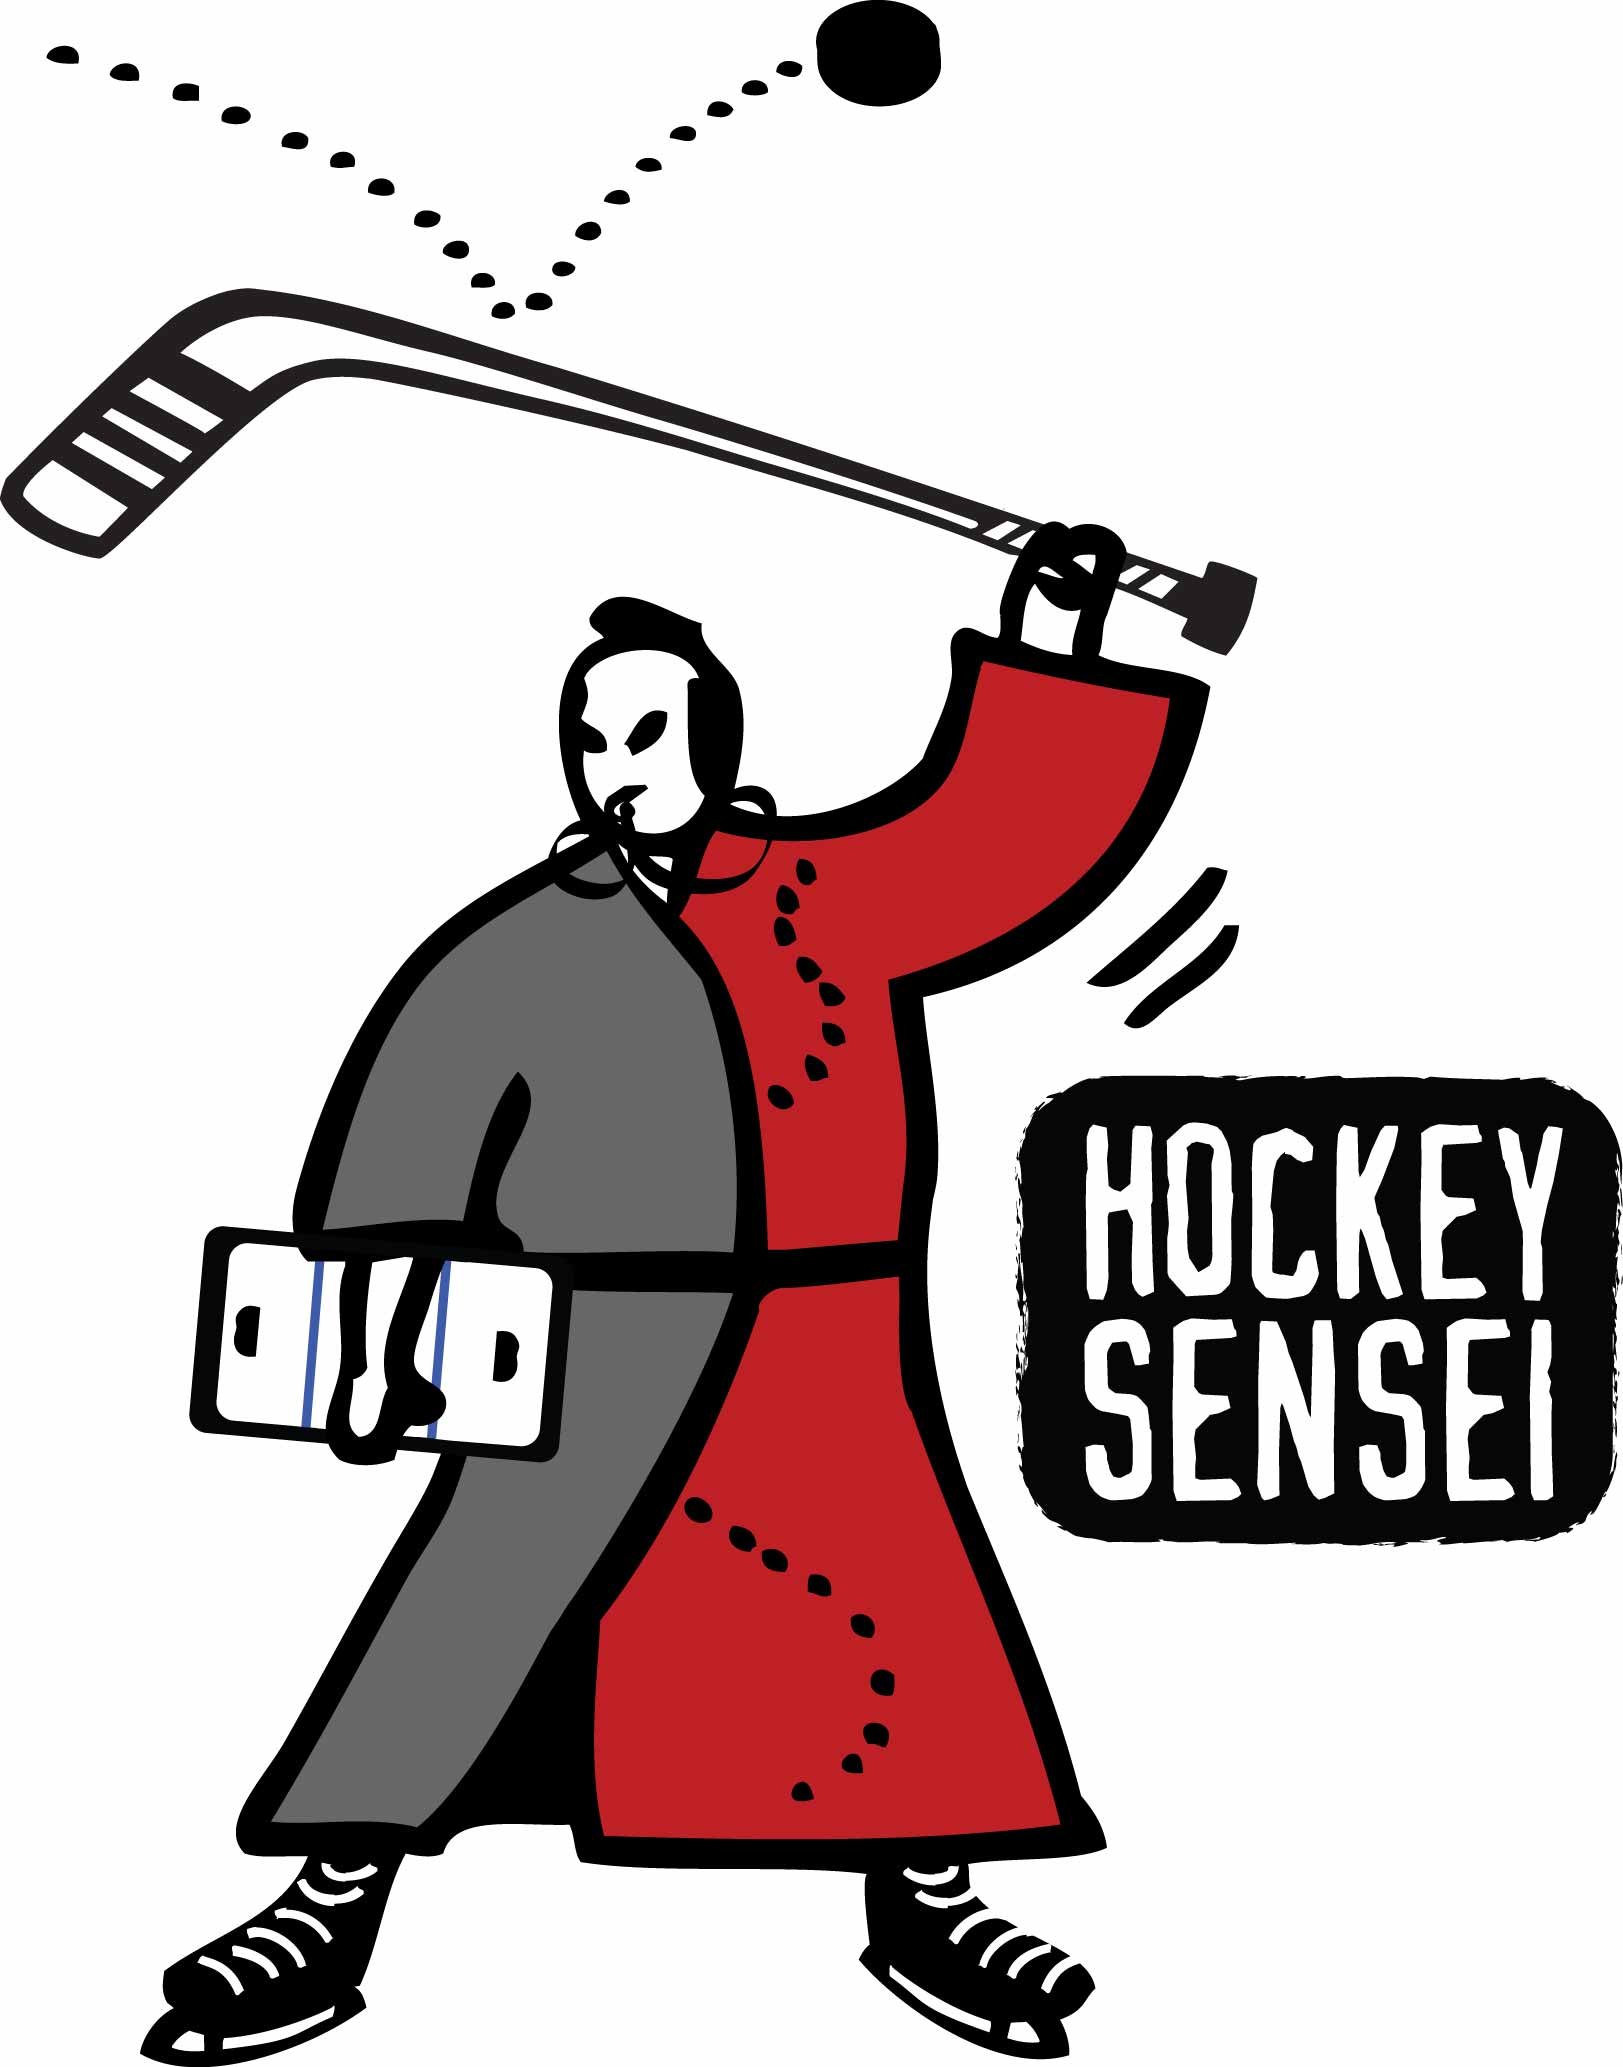 The hockey sensei logo designed by The Next Wave in Dayton OH